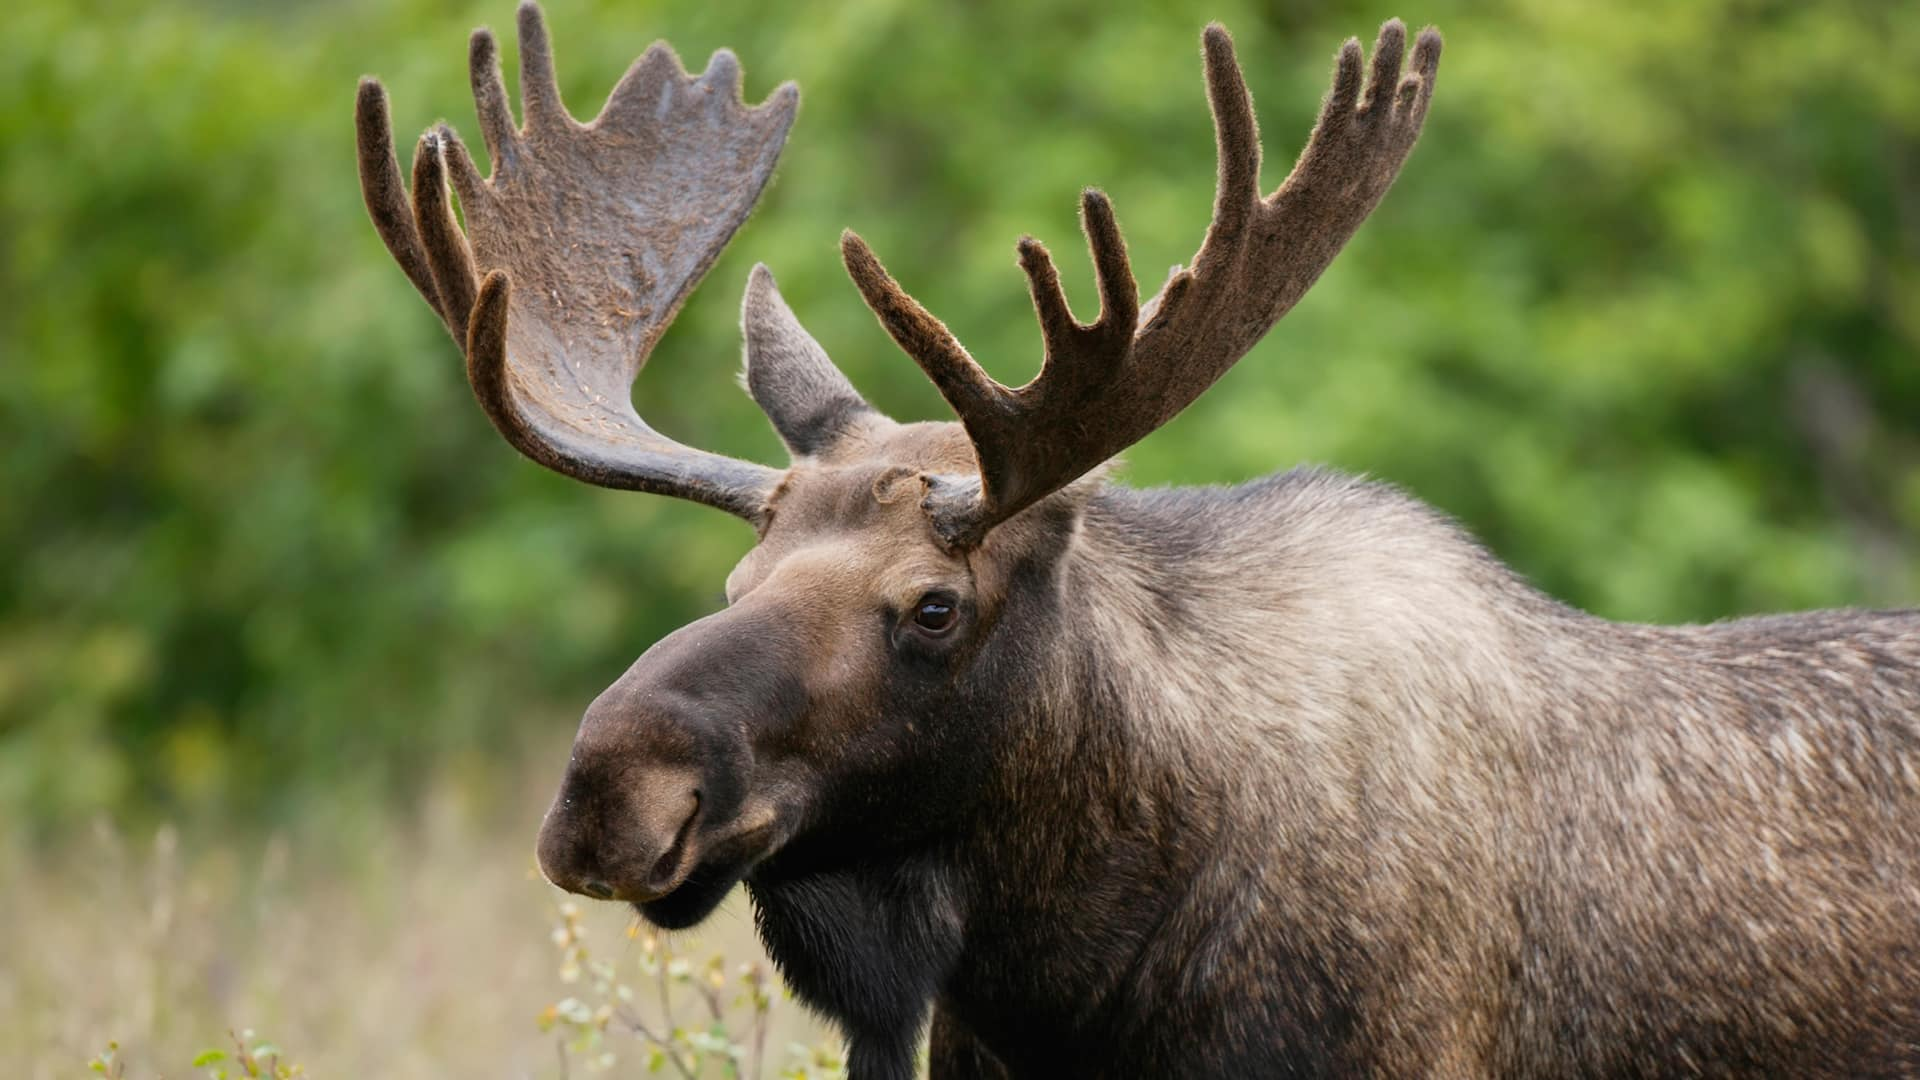 Moose: Everything You Ever Wanted to Know